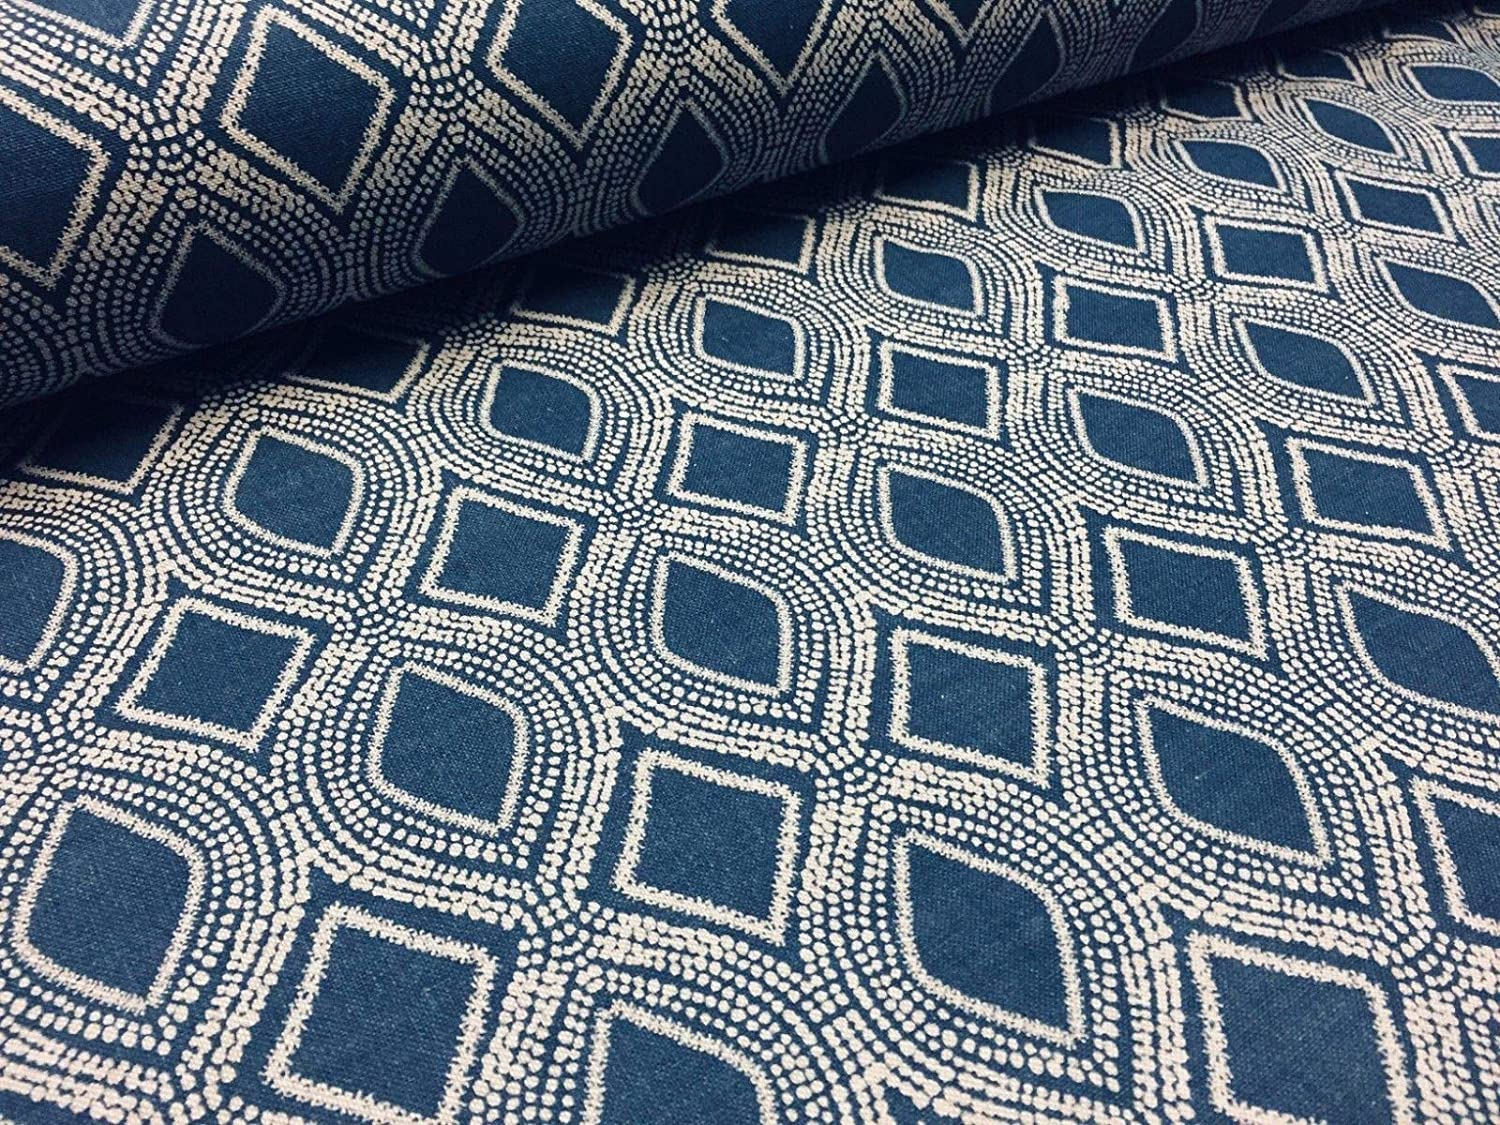 Art Deco Damask Floral Fabric Curtain Upholstery Linen look Navy Blue & Cream SAMPLE 10cm x 10cm